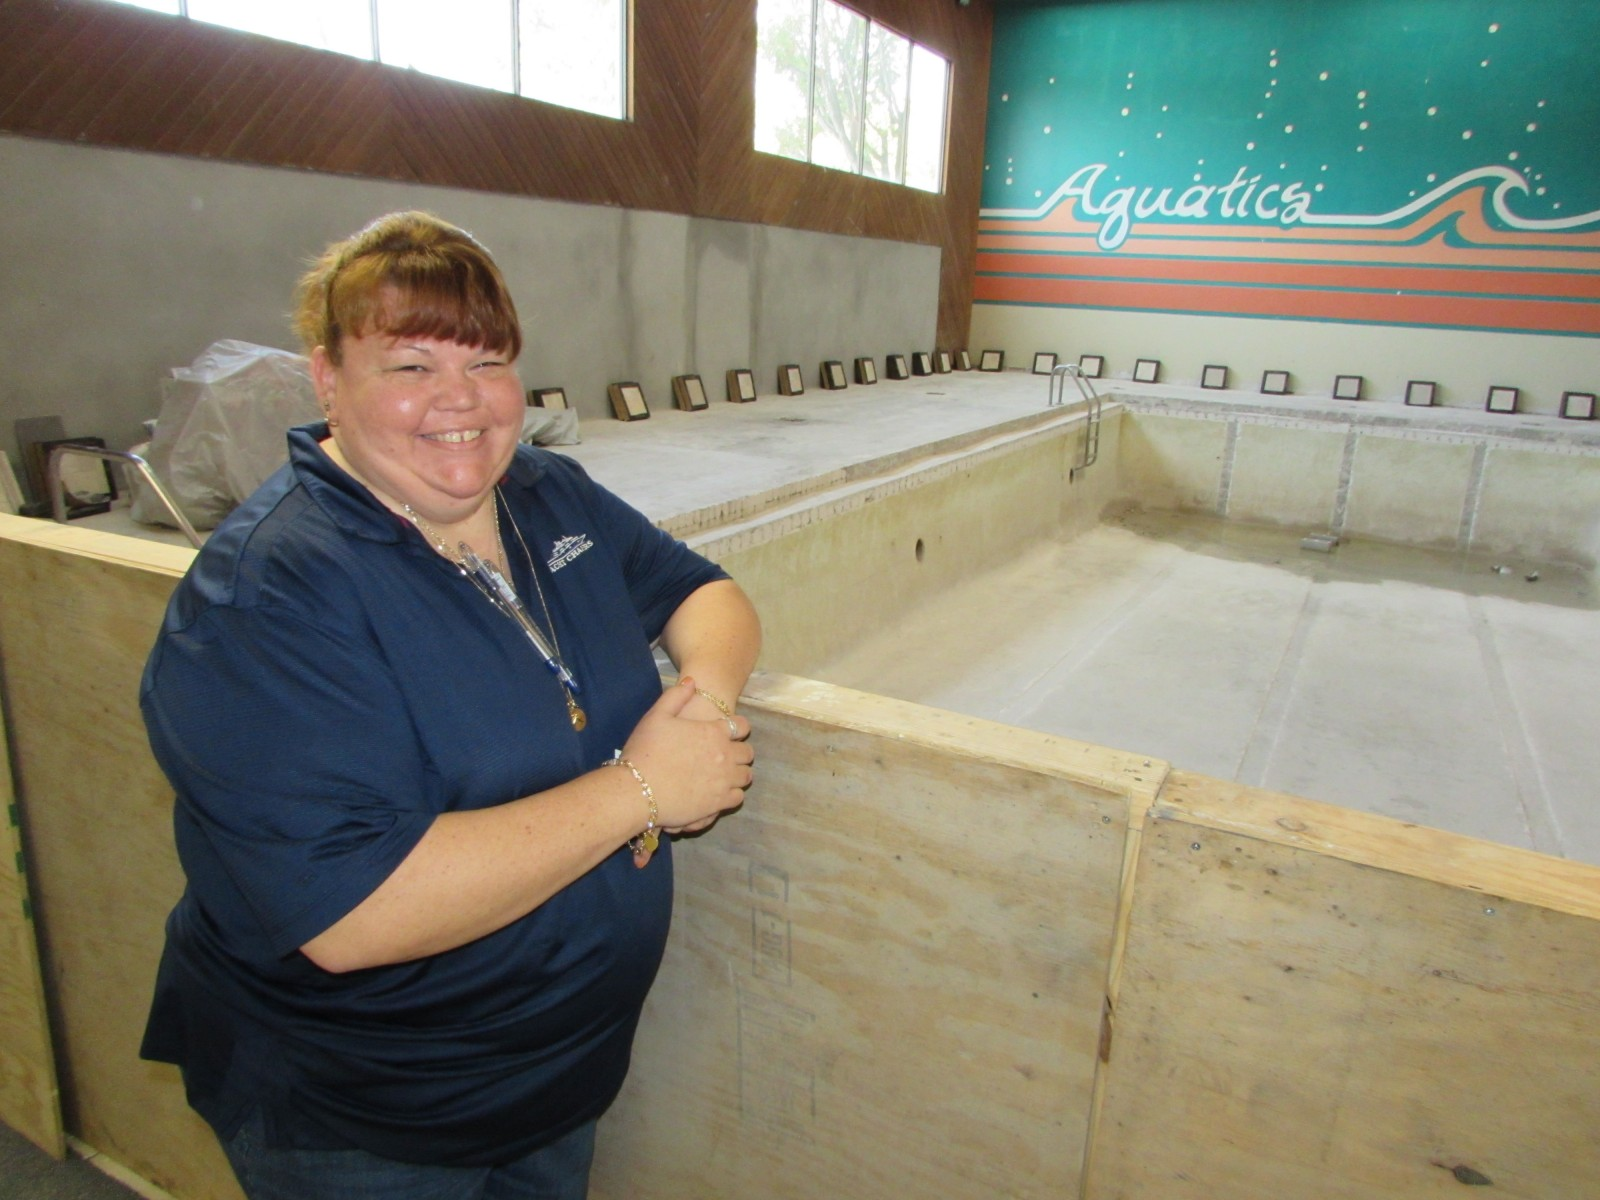 Office manager Charlotte Brillinger shows the indoor pool under construction at Yacht Chandlers' new location in Ft. Lauderdale this week. PHOTOS/DORIE COX